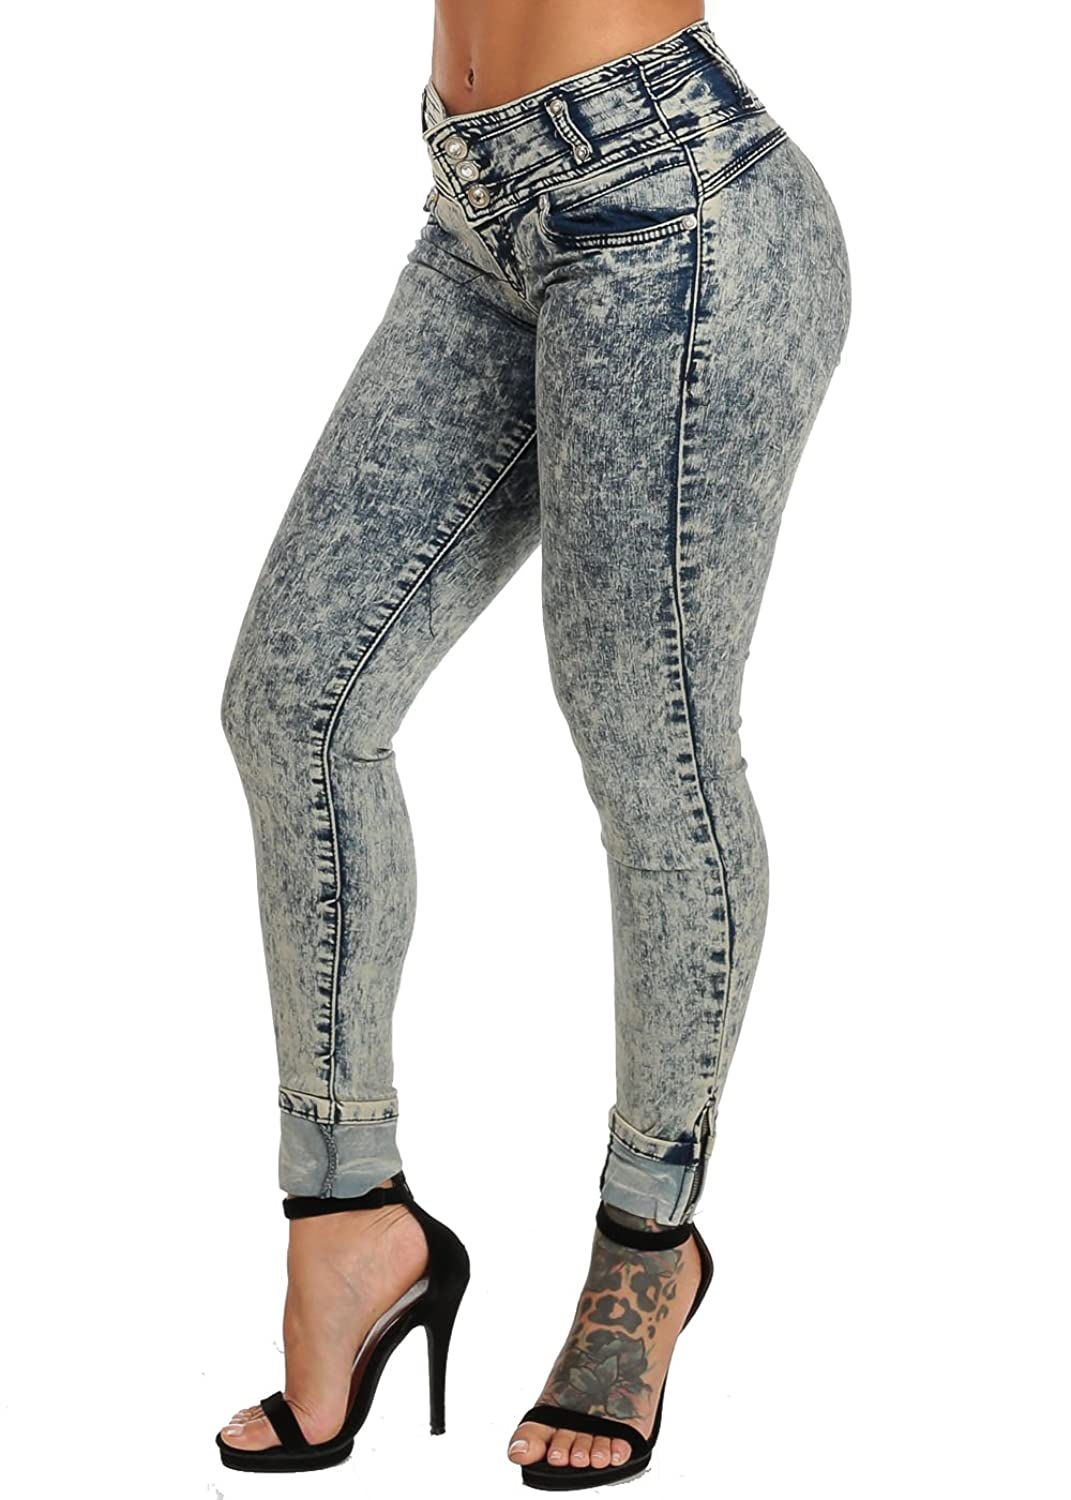 Erotic Touch Low Rise Vintage Acid Wash Butt Lift Ankle Jeans 11036M